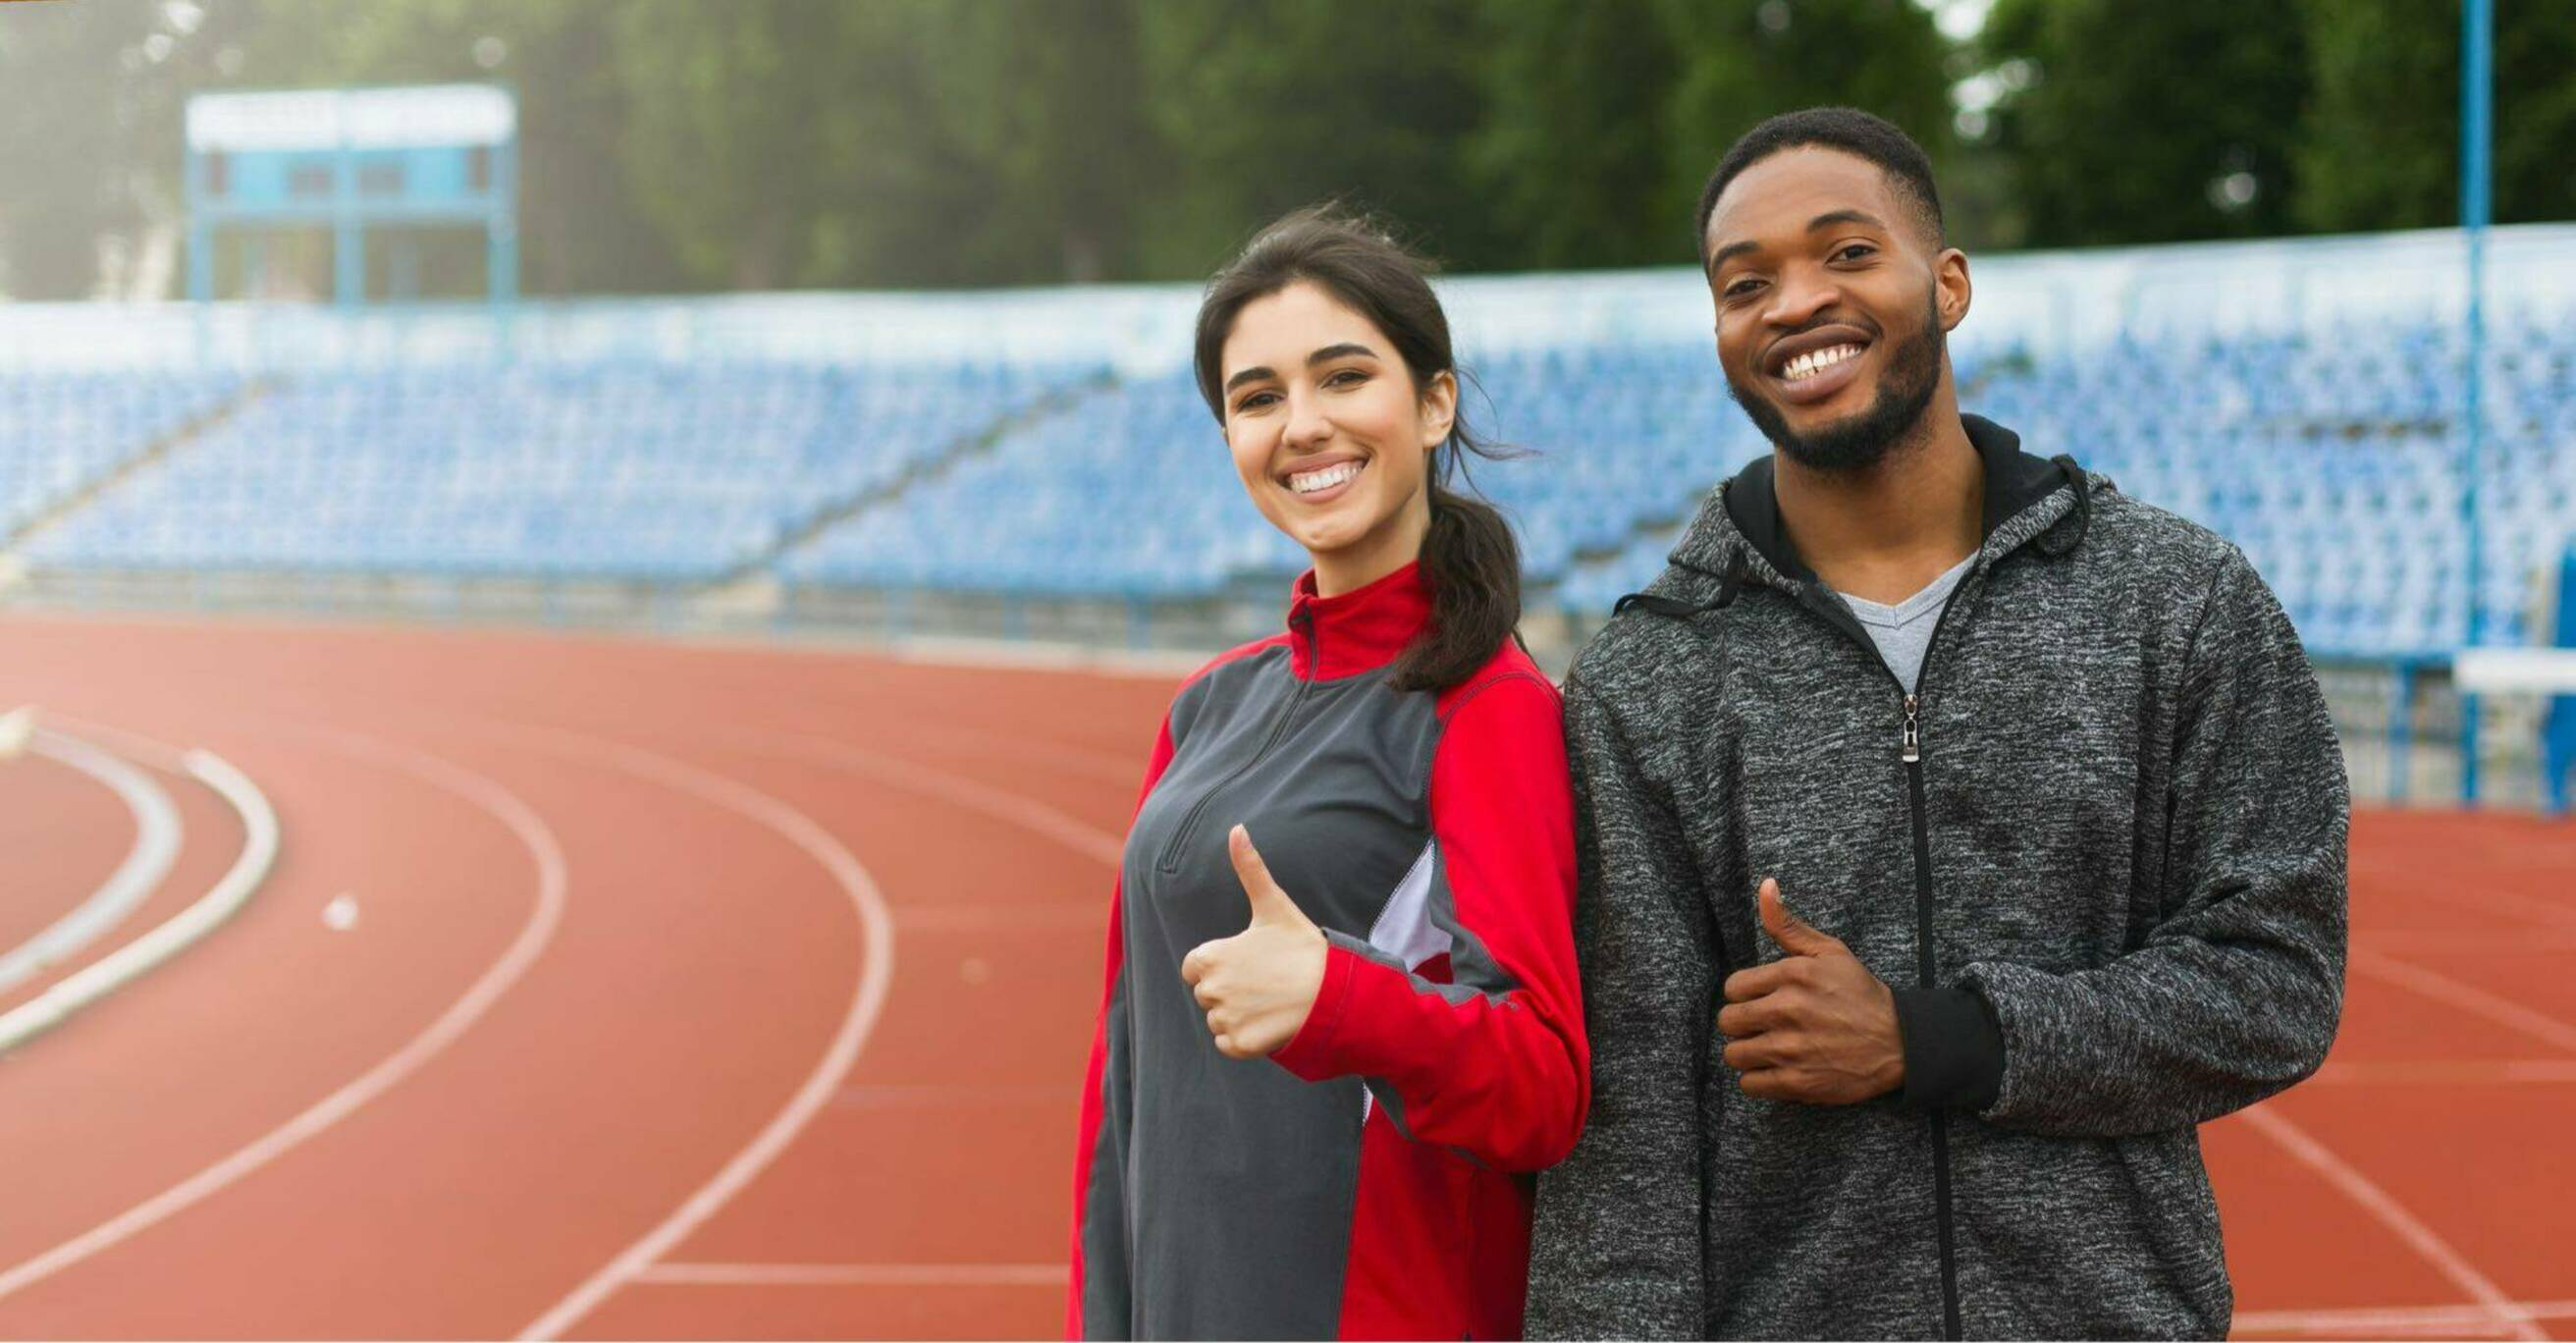 Man and woman stand on track and give thumbs up gesture2